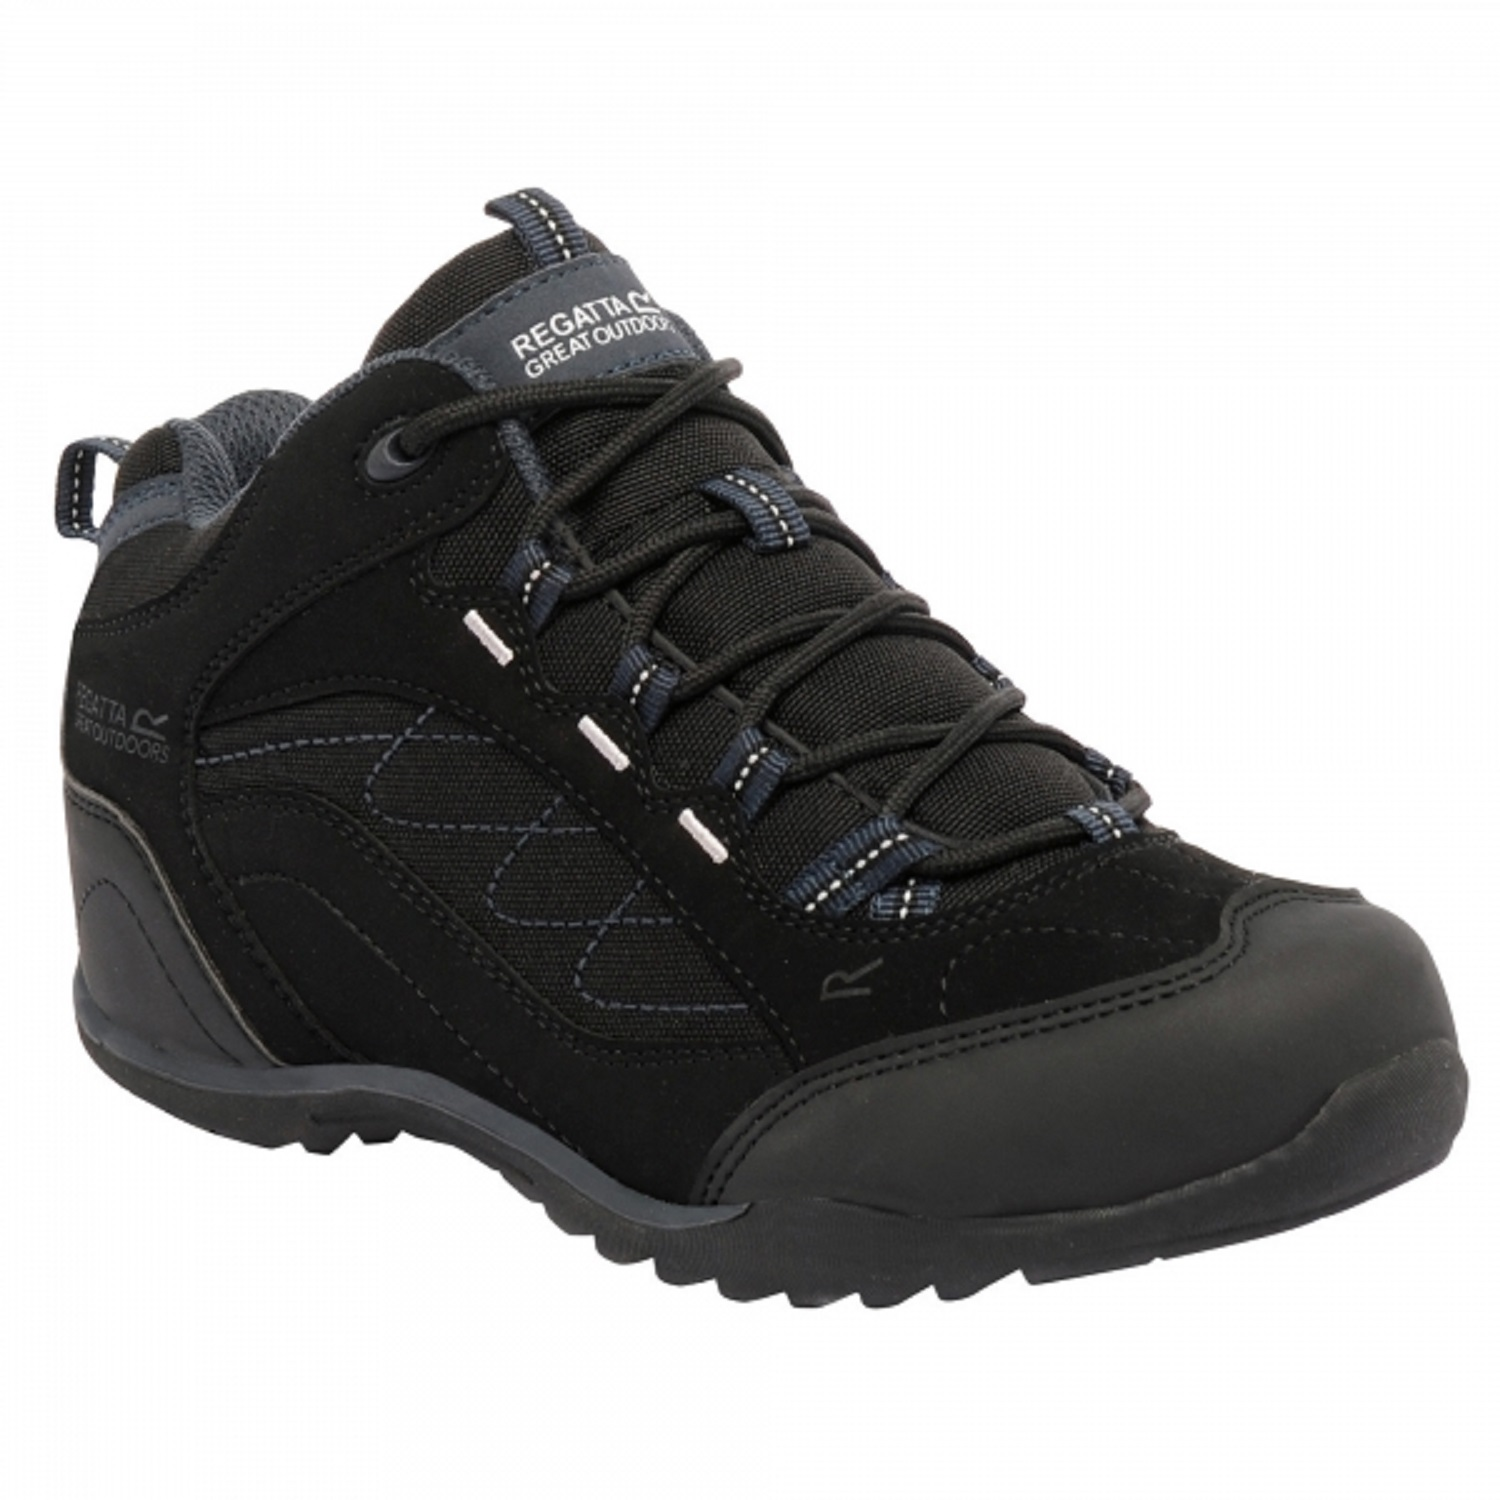 New Cheap Hiking Boots Are Often Made Of The Same Materials  The Lowcut Boots Are Cut On The Narrow Side, Which Makes Them A Good Choice For Men And Women The Shoes Are Very Lightweight, With Ventila